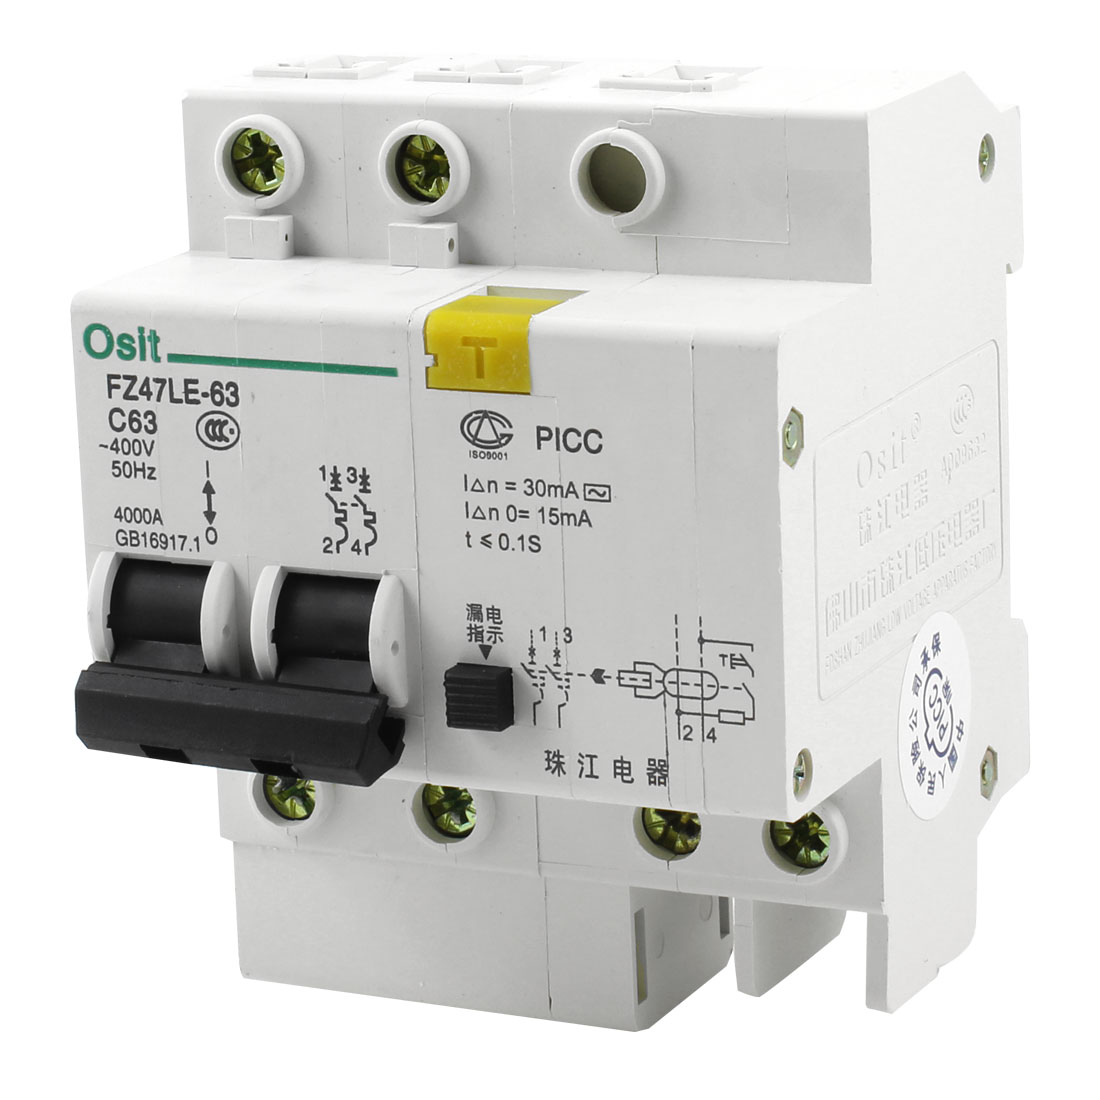 DIN Dail 2P Overload Proetction Circuit Breaker AC 400V 63A C63 4000A FZ47LE-63